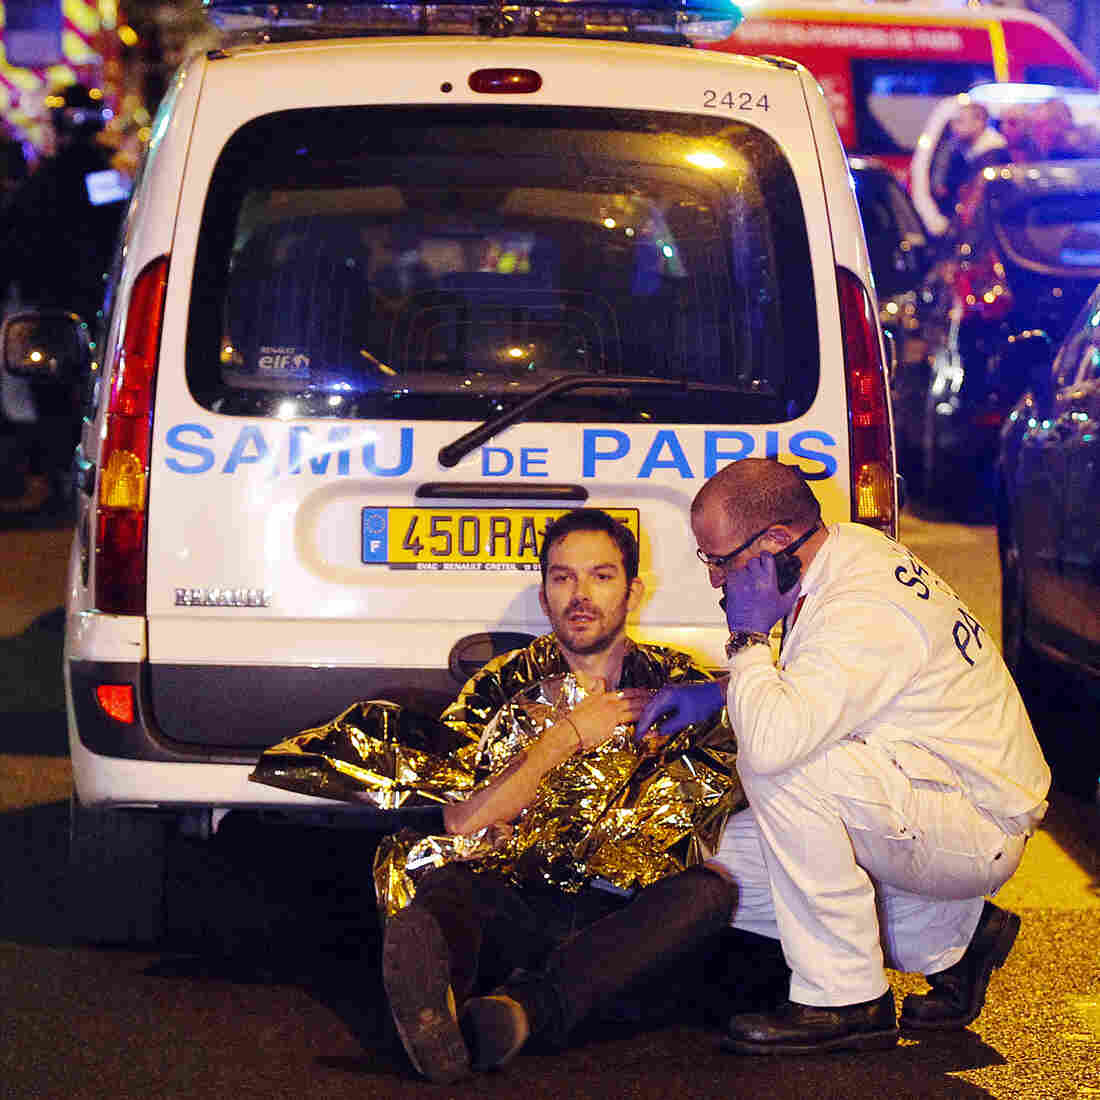 A medic tends to a man injured in the terror attacks in Paris on Friday evening. The Islamic State has claimed responsibility for the coordinated assault that has claimed more than 120 lives.